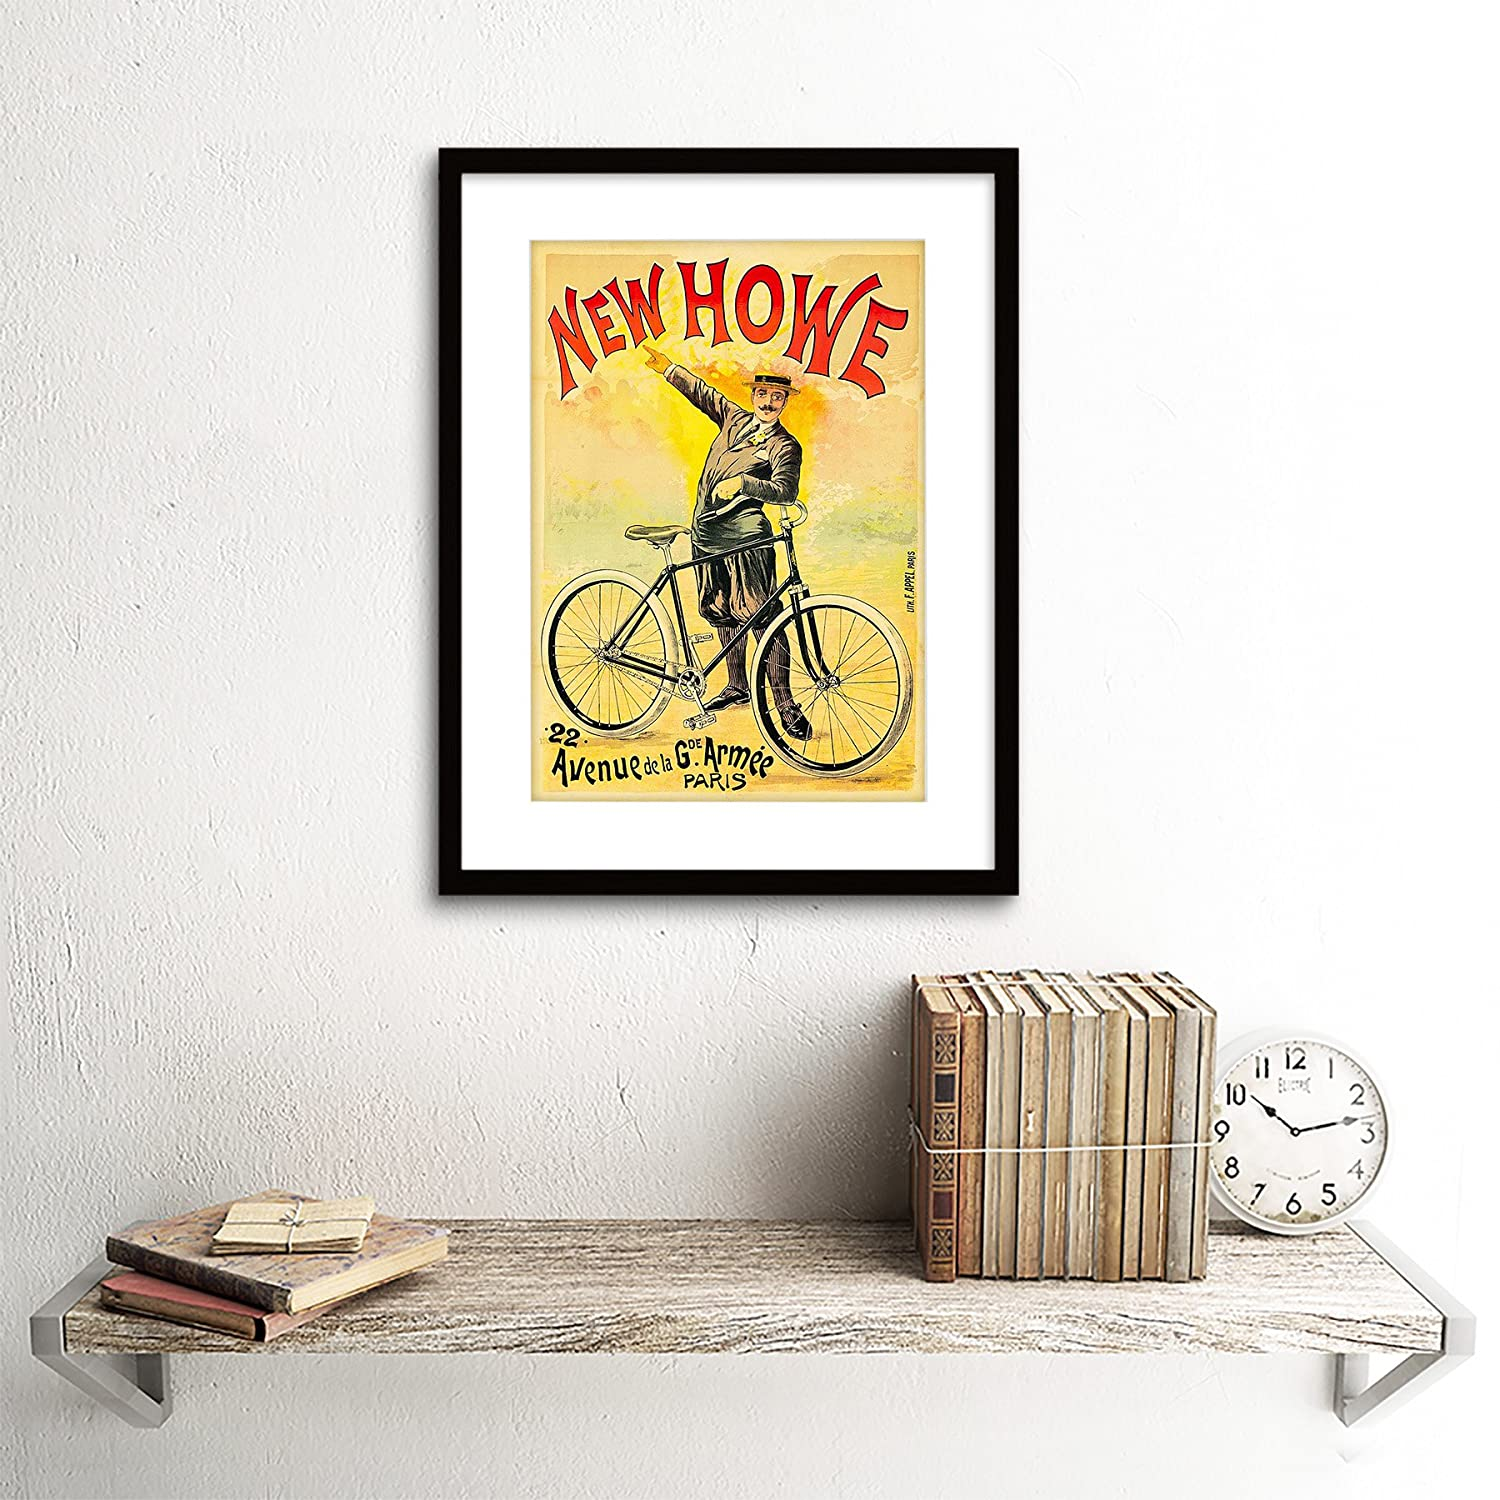 Amazon.com: ADVERT TRANSPORT NEW HOWE VINTAGE BICYCLE PARIS FRANCE ...